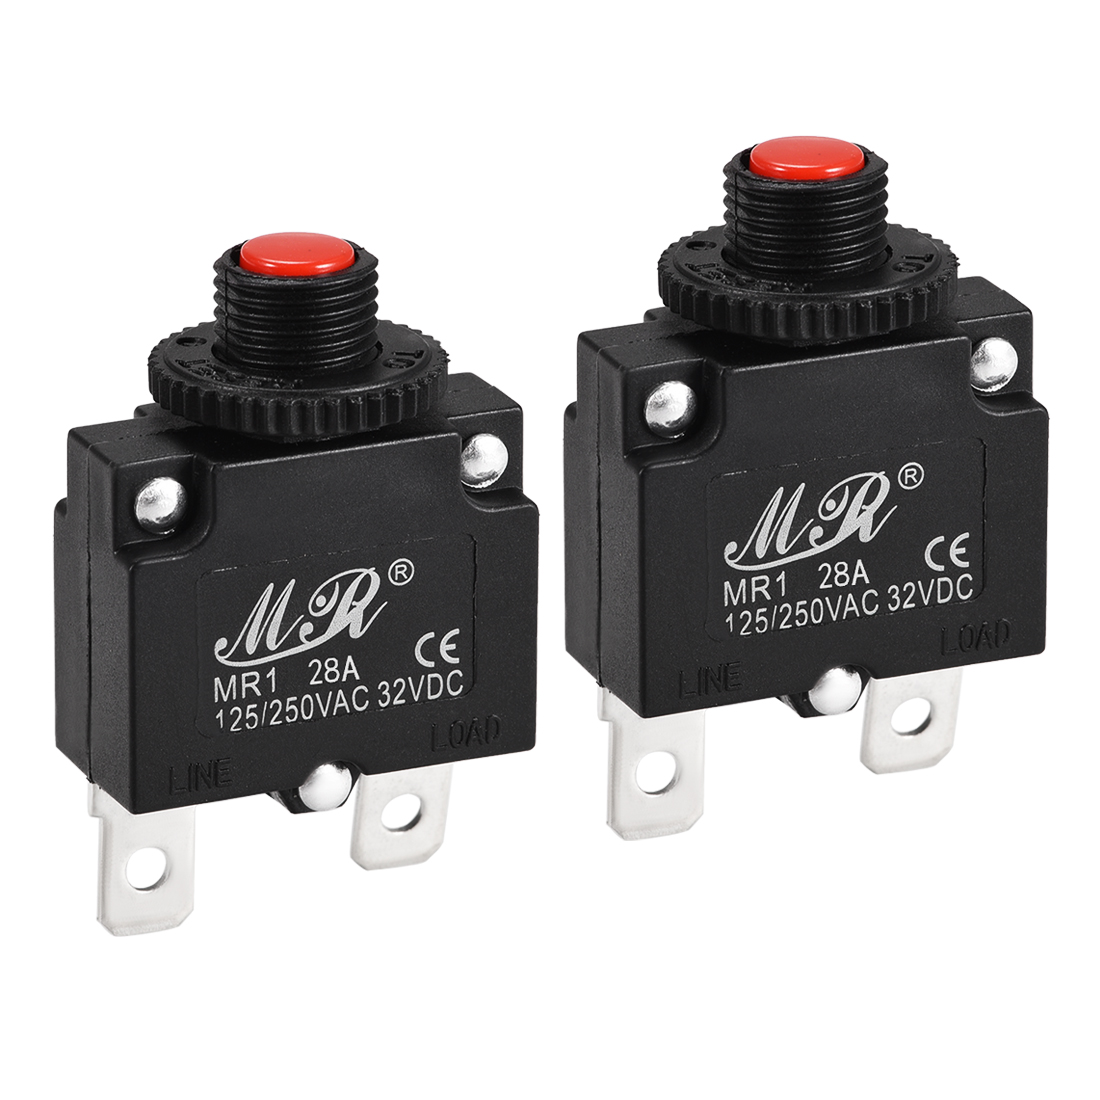 2 Pcs 28A Push Button Manual Reset Overload Protector Thermal Circuit Breakers